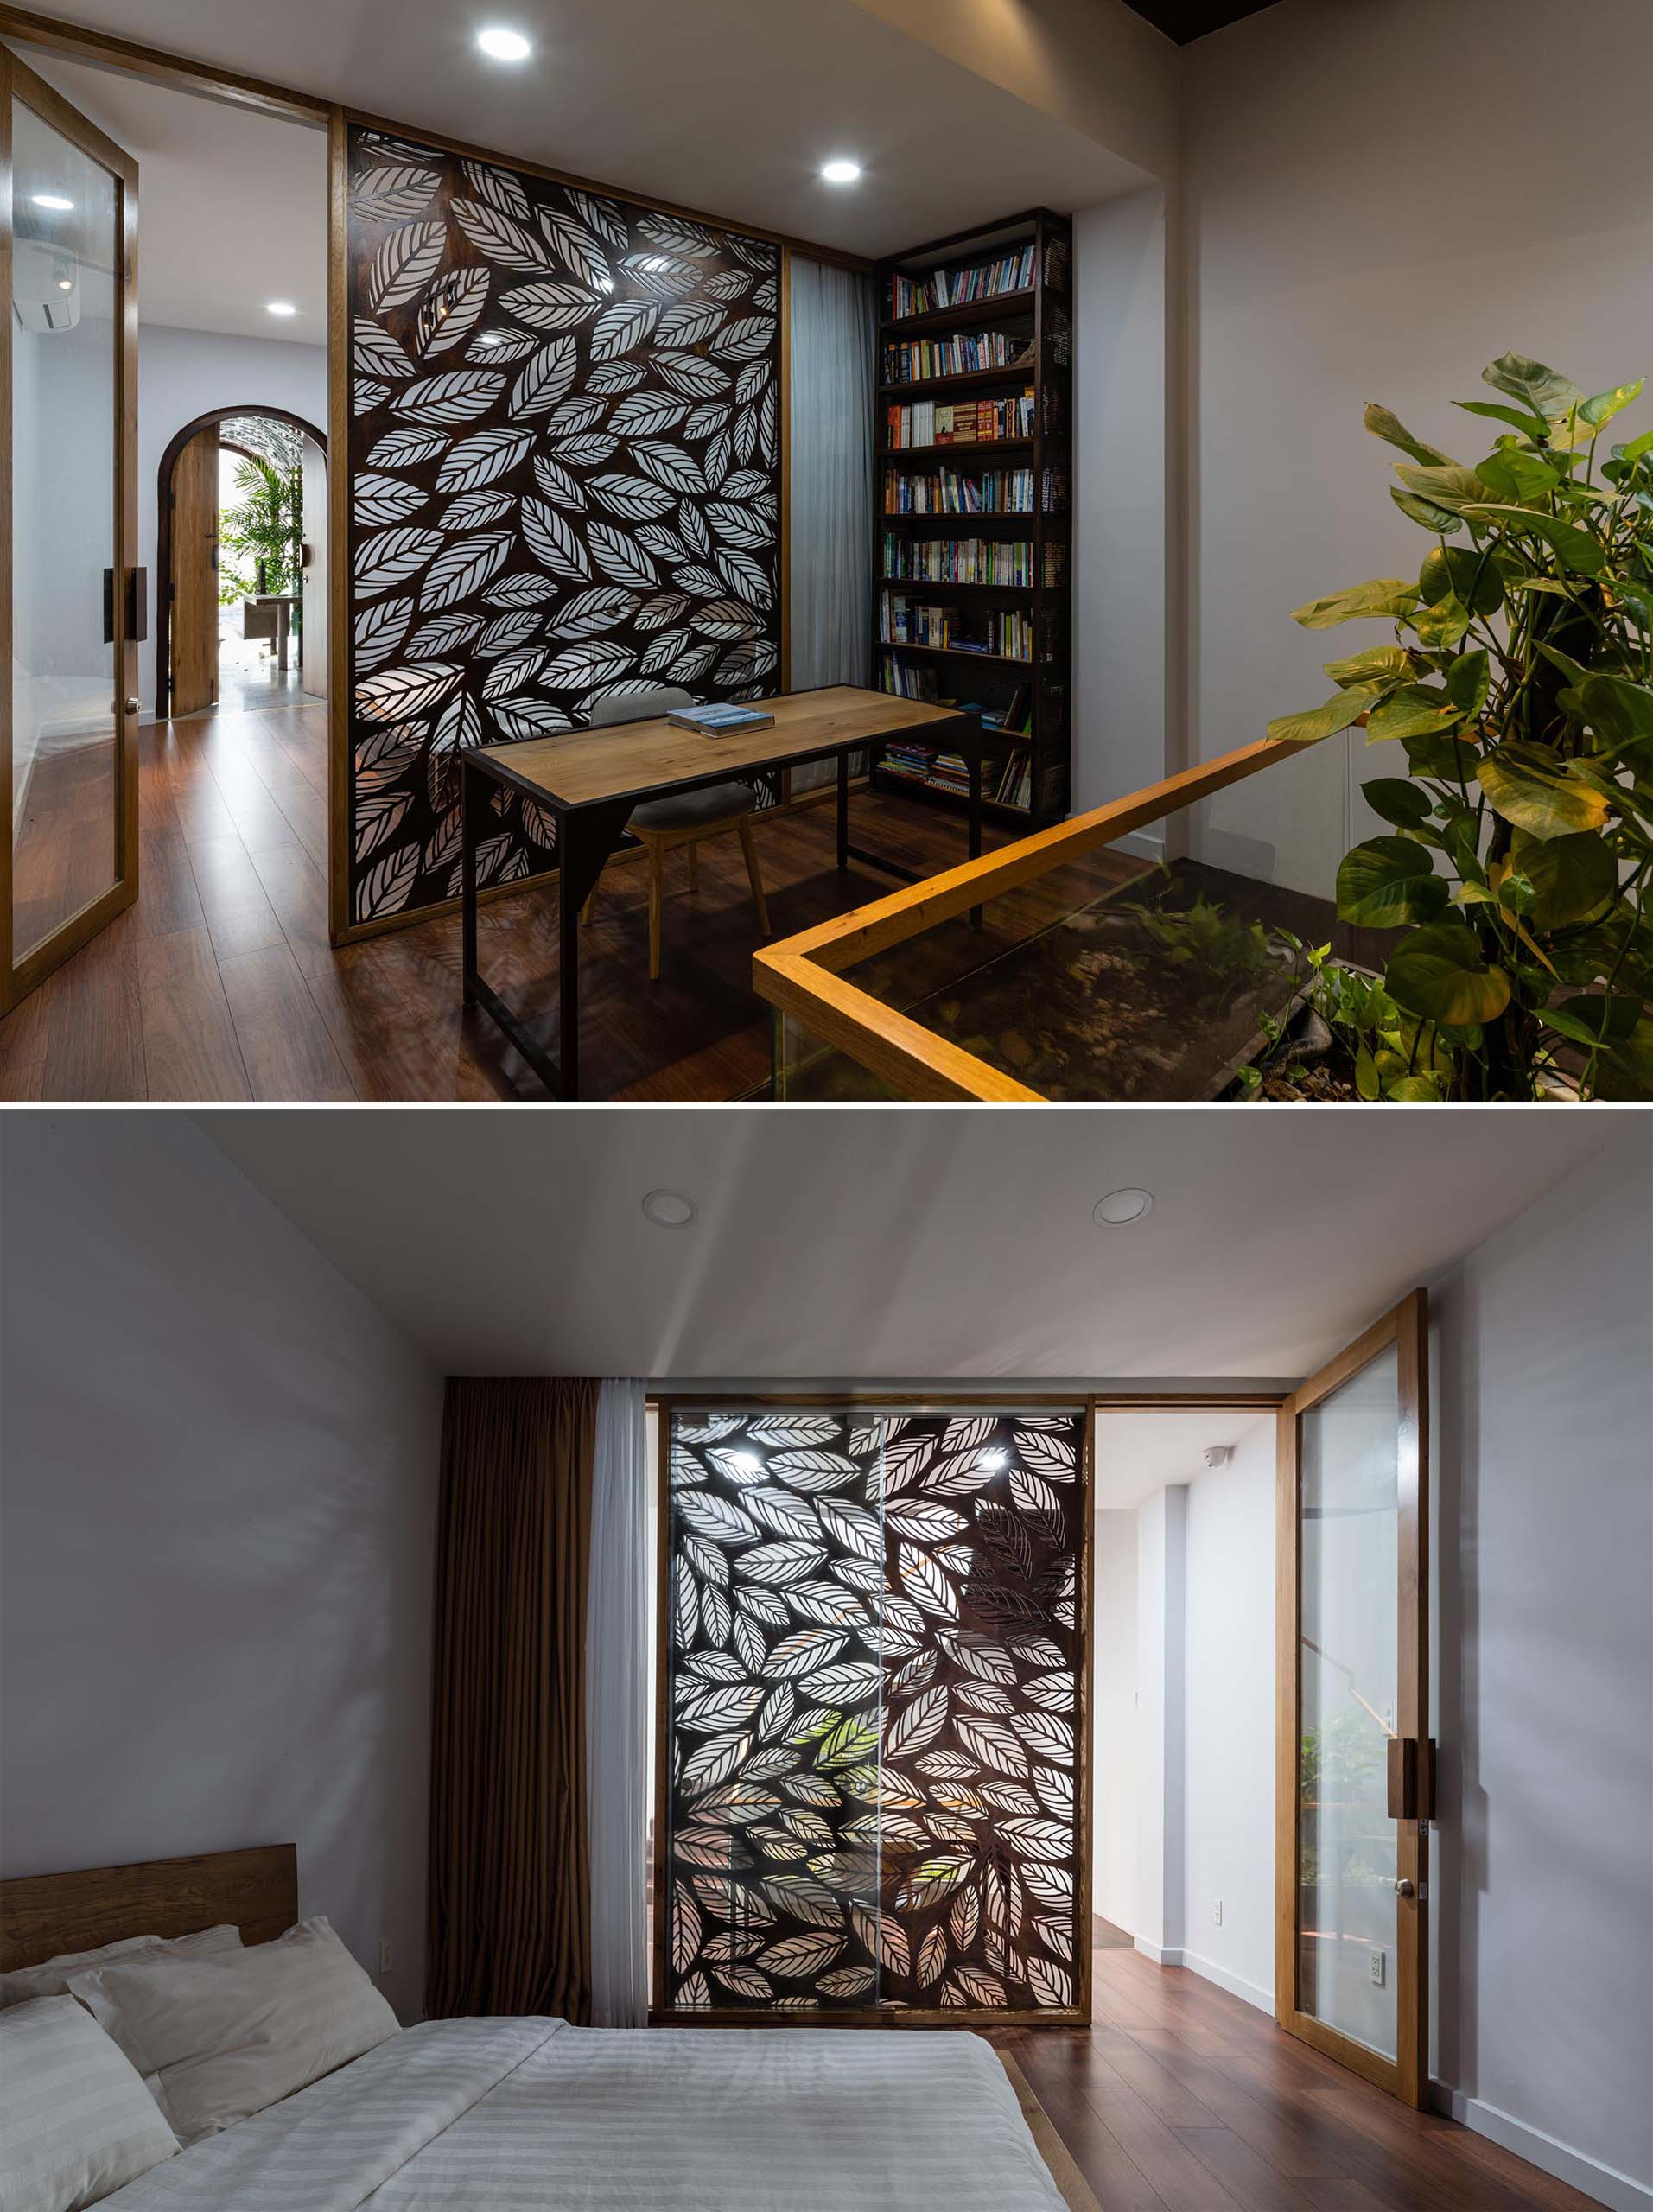 In this modern home, a small home office has been set up off the hallway, with the wall of the bedroom acting as a decorative leaf motif accent wall.